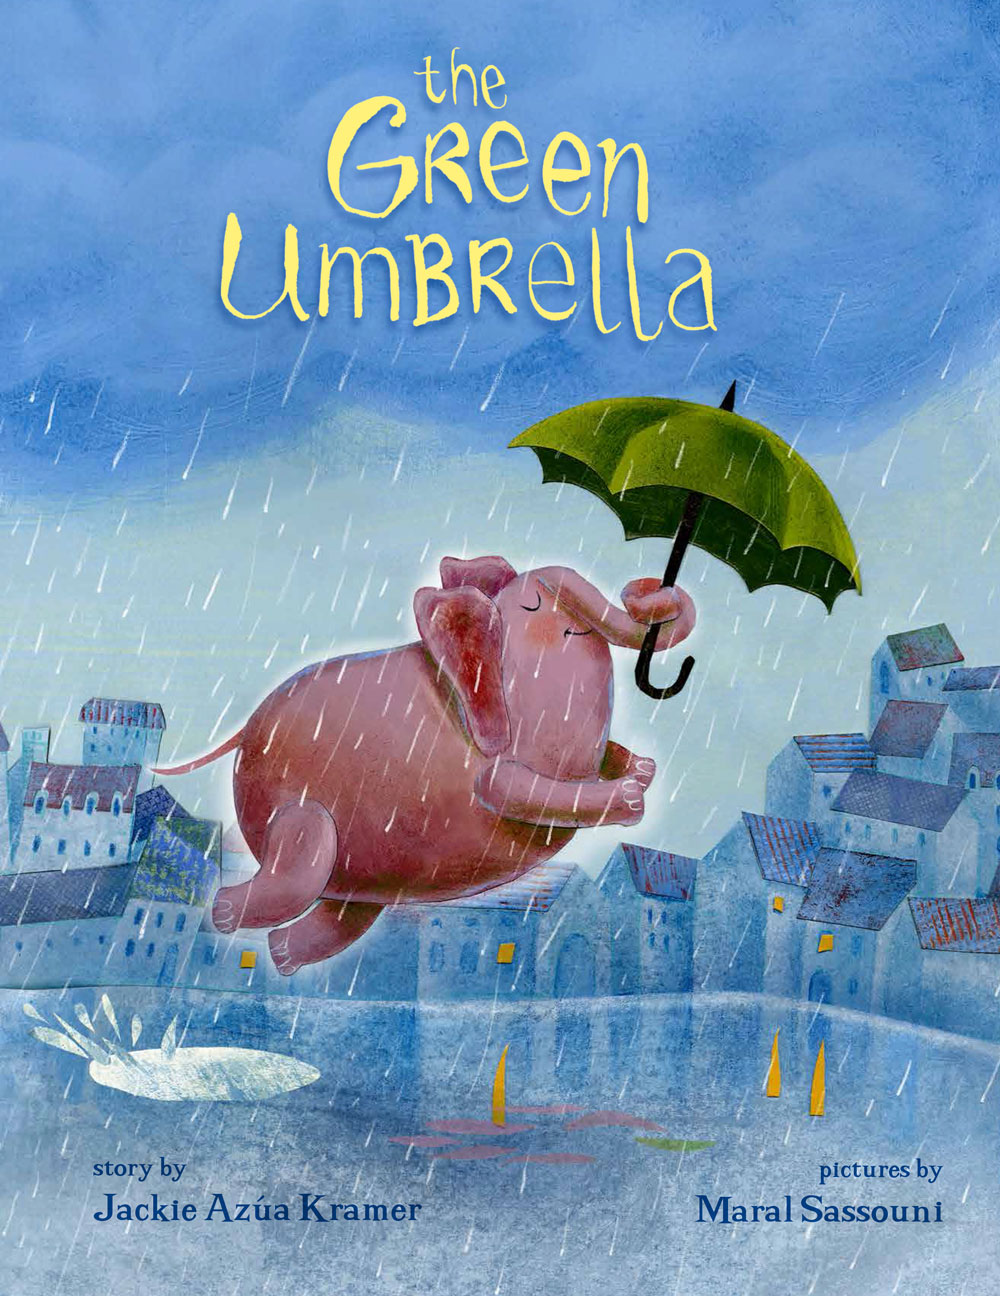 THE GREEN UMBRELLA - by Jackie Kramer, illustrations by Maral SassouniNorthSouth Books / NordSüd Verlag (2017)Hardcover: 32 pagesISBN-13: 978-0735842182•A 2017 Bank Street Best Children's Book of the Year.Mom's Choice Award - GoldParents Choice Award - SilverCrystal Kite 2018 - runner-up•Available in:English, German, Russian, Chinese, Slovenian and Romanian.